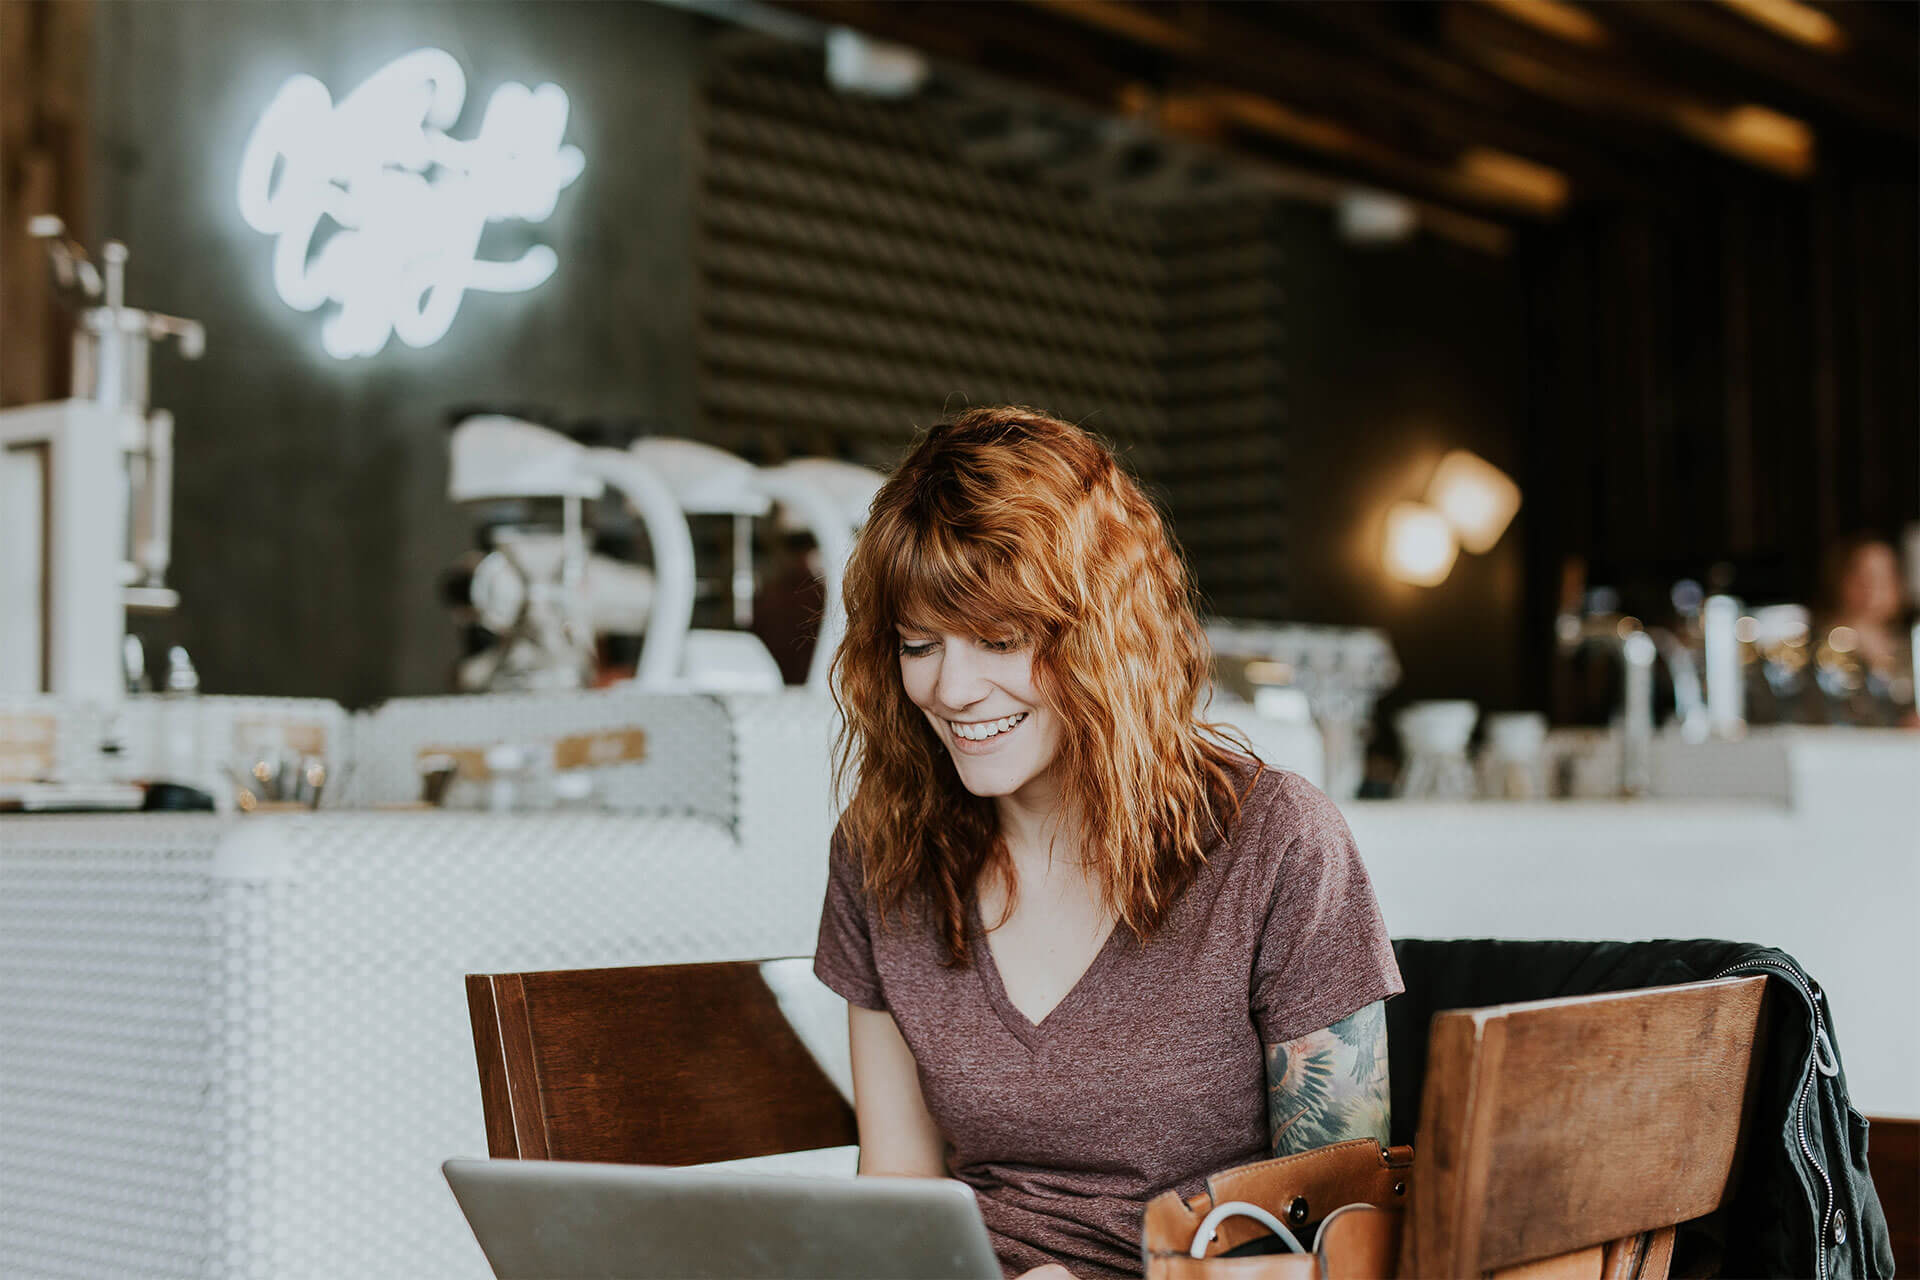 How to Make Cyber Monday 2019 a Success for Small Businesses